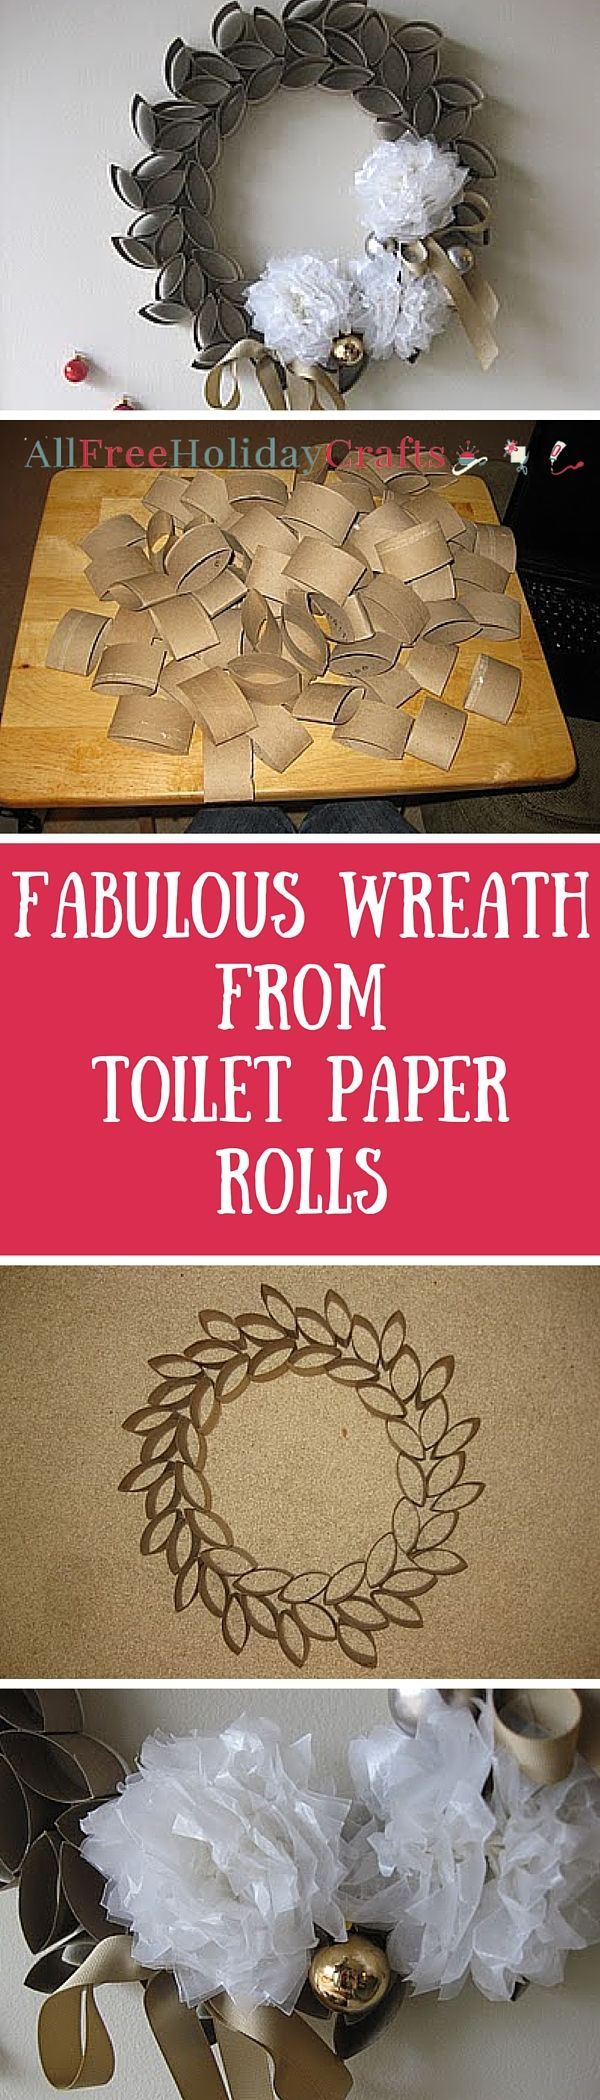 Recycled cardboard has never looked so good. If you're looking for simple homemade Christmas decorations to make this winter, you should learn how to make a Christmas wreath like this. Read more at http://www.allfreeholidaycrafts.com/DIY-Christmas-Decorations/Fabulous-Wreath-from-Toilet-Paper-Rolls#HIF6I1F1hKmVHqdR.99